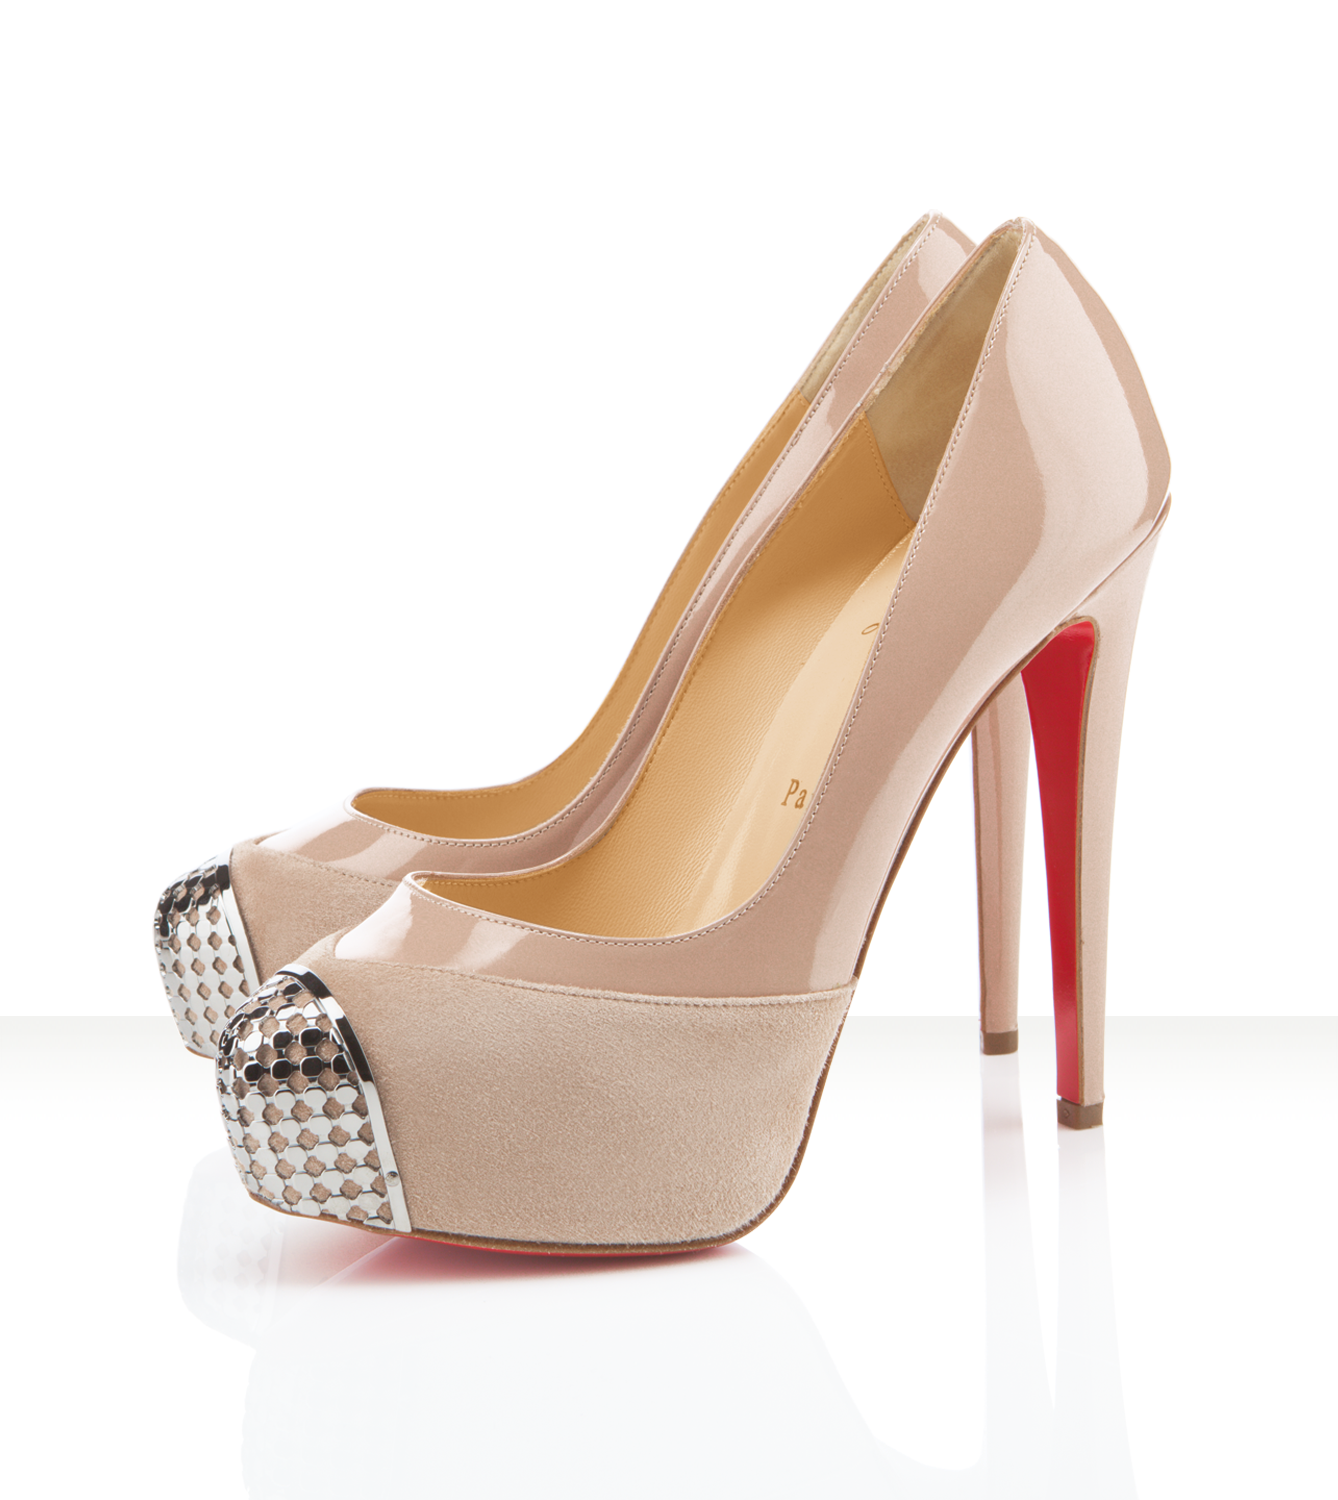 Find this Pin and more on Dresses and Accessories. Christian Louboutin Shoes  ...